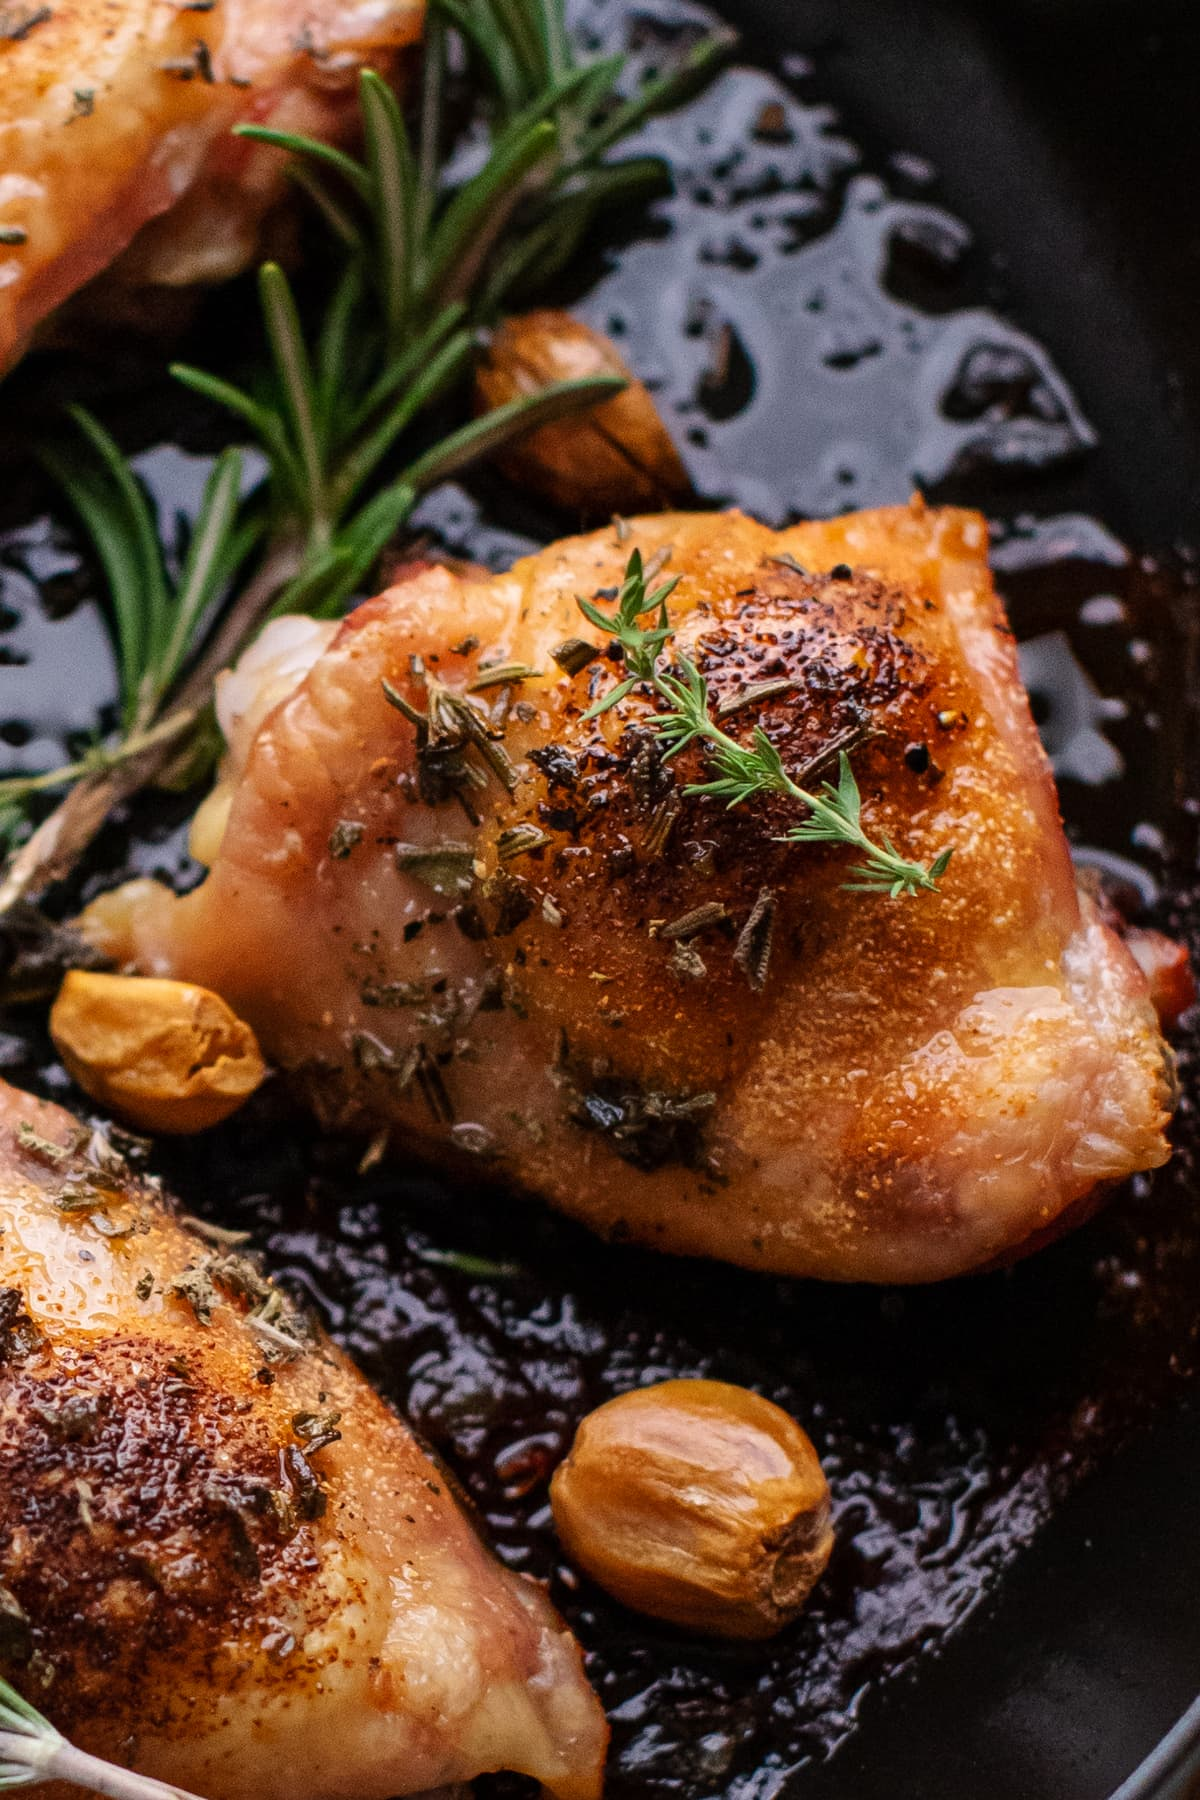 close up of roasted chicken thighs in a skillet with herbs and roasted garlic cloves arranged around them.